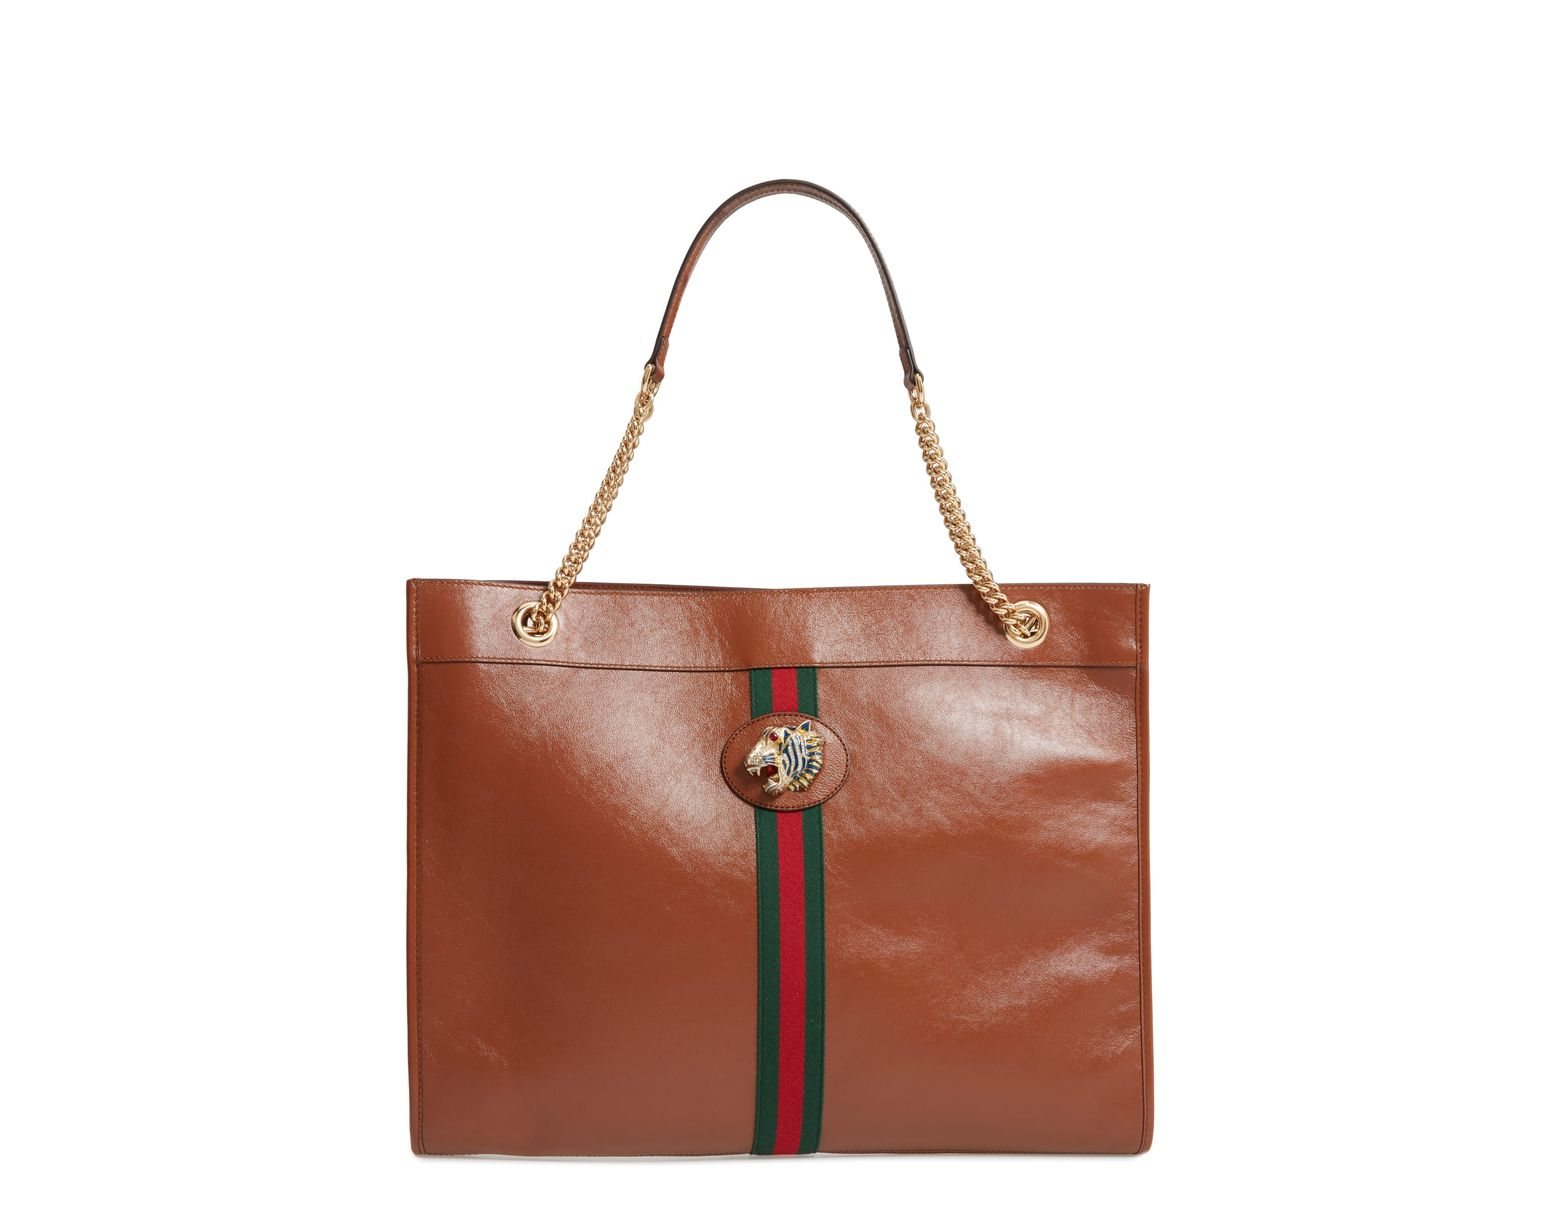 d15954f24cef Gucci Large Linea Rajah Leather Tote in Brown - Lyst